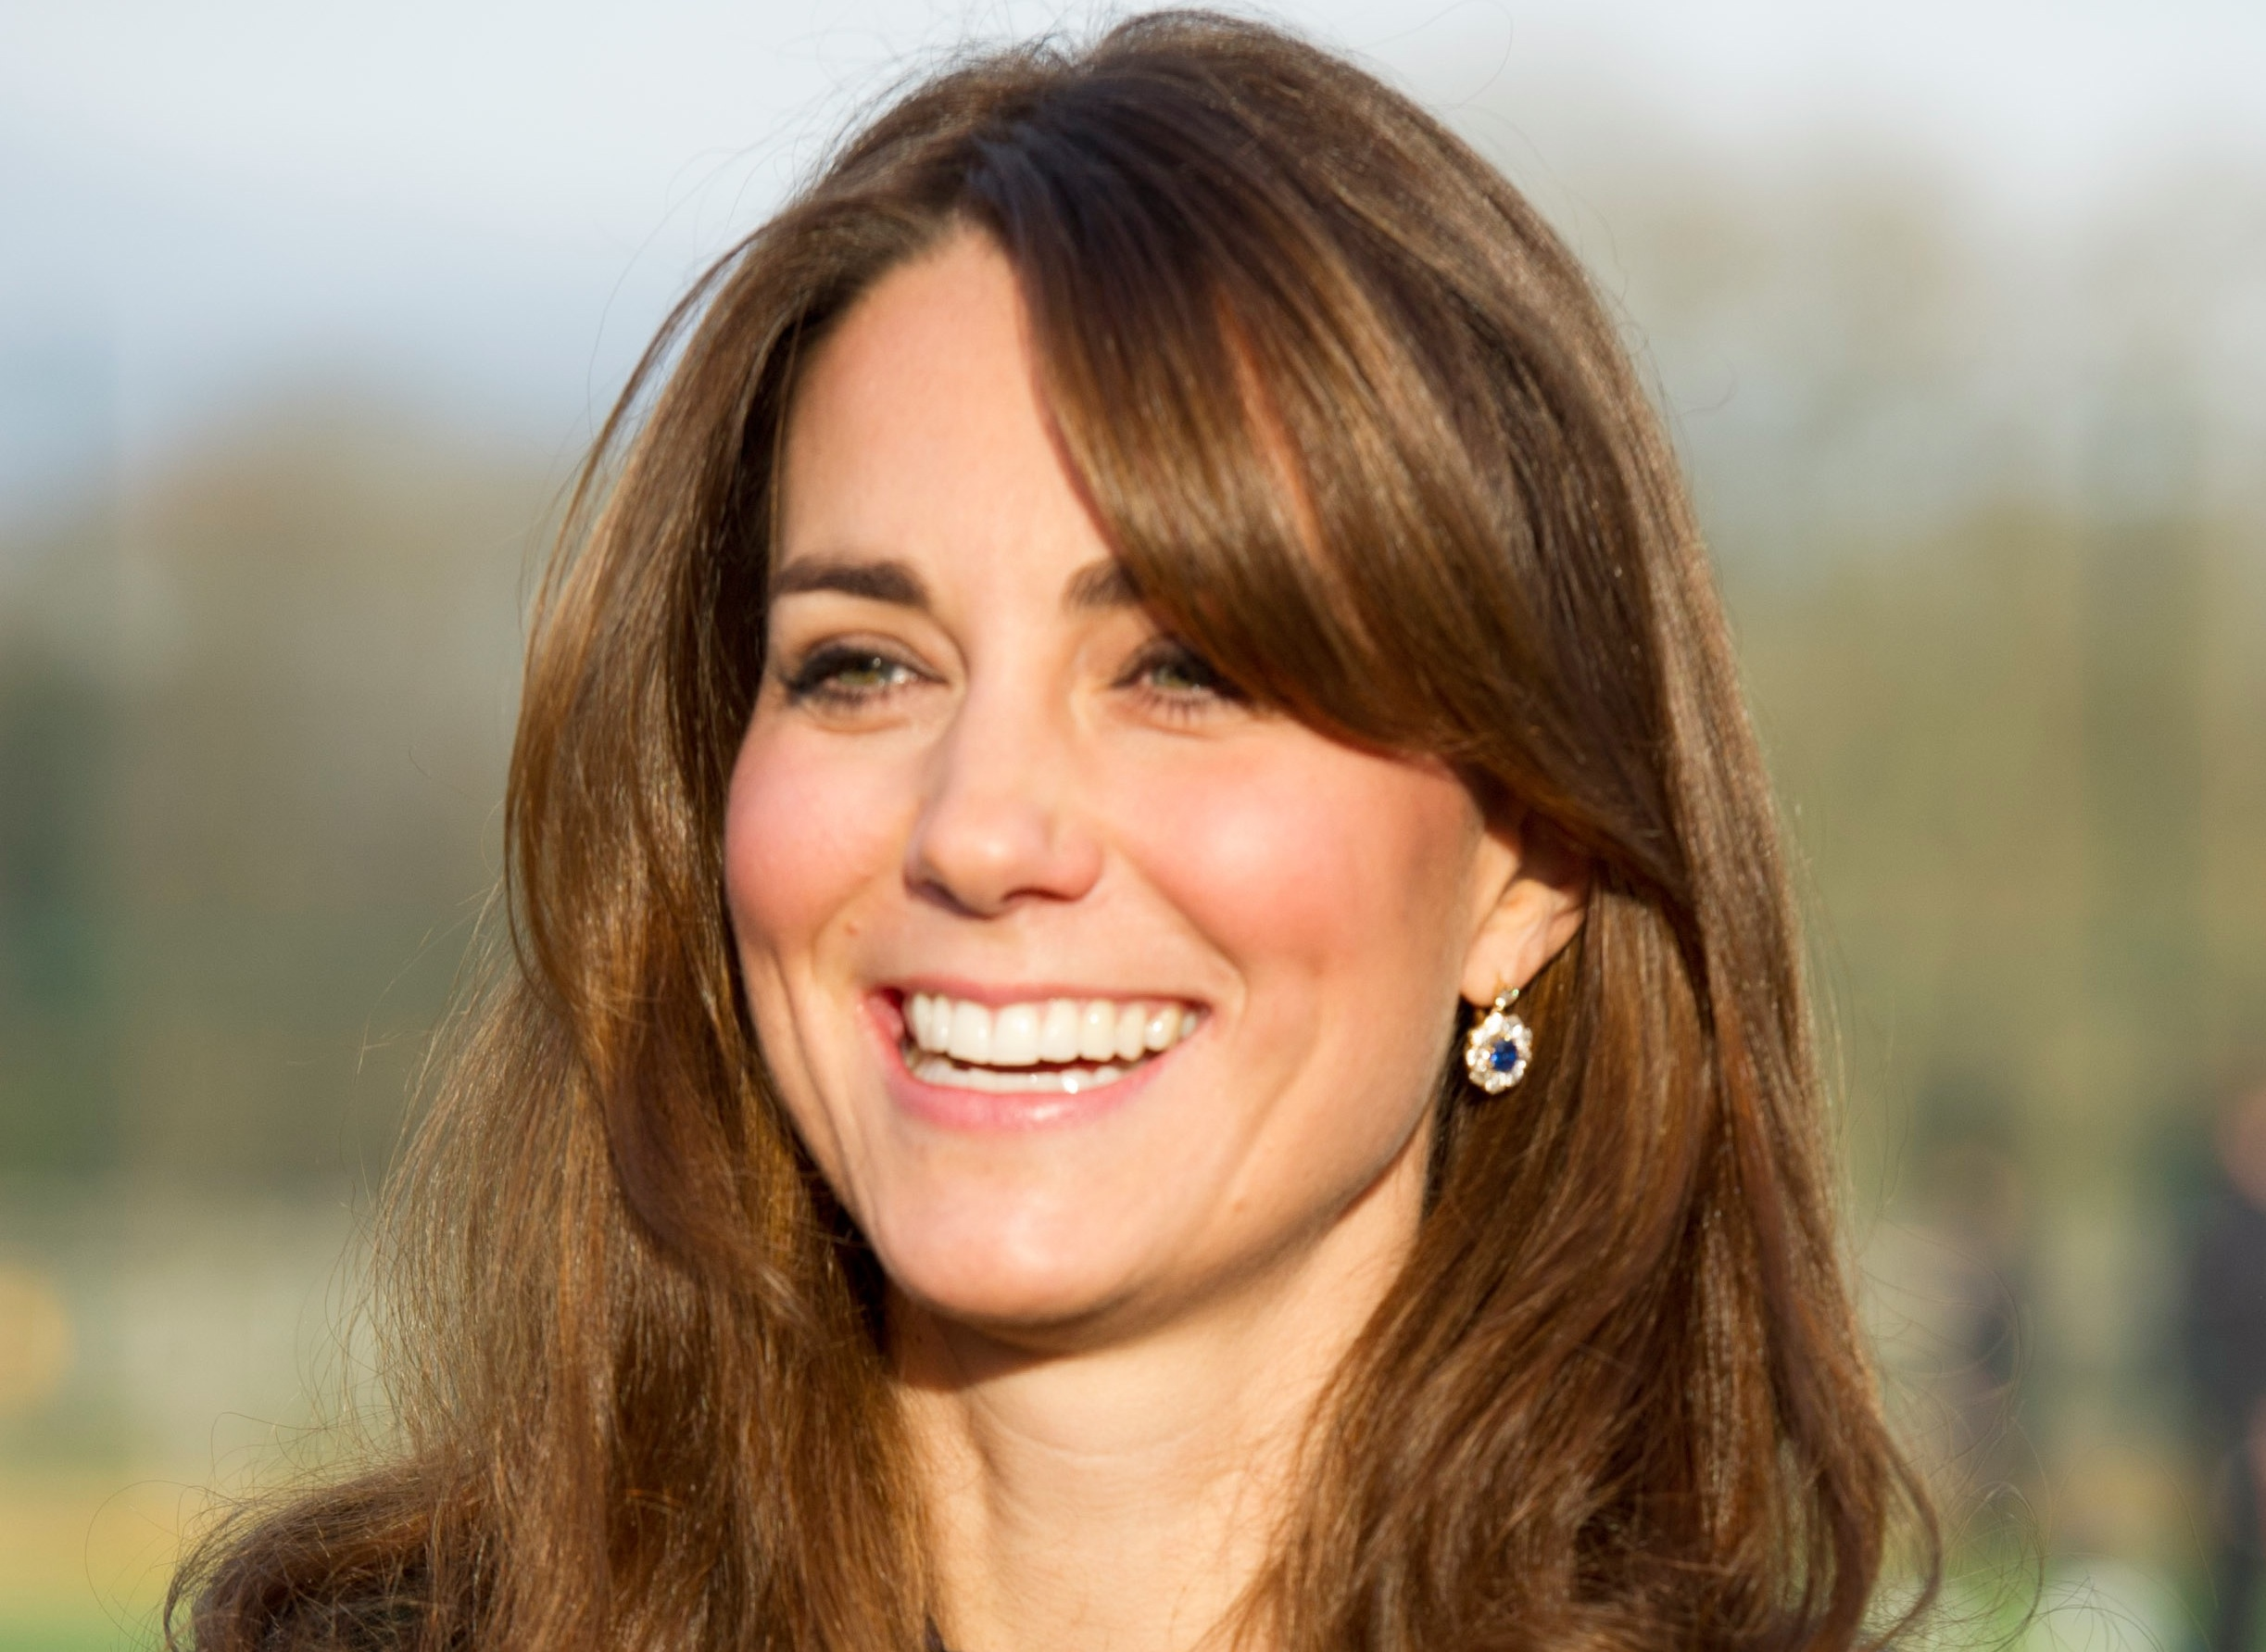 It's Official! Kate Middleton is Pregnant